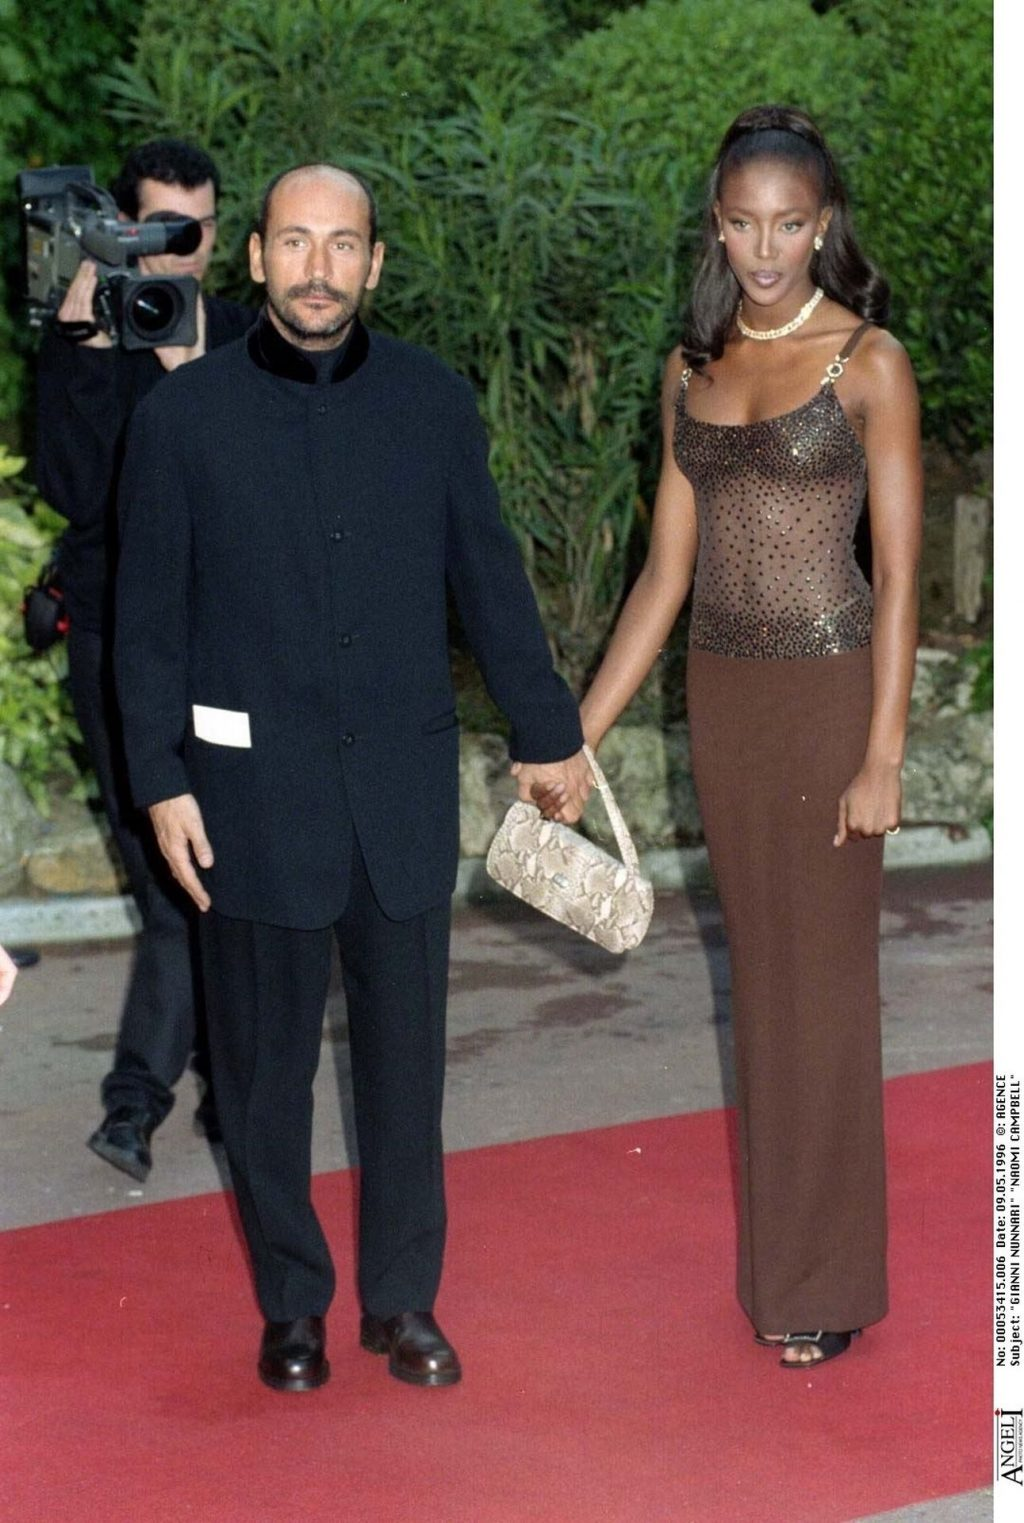 Supermodel Naomi Campbell Archive Content Ahead of Her 50th Birthday (67 Photos)